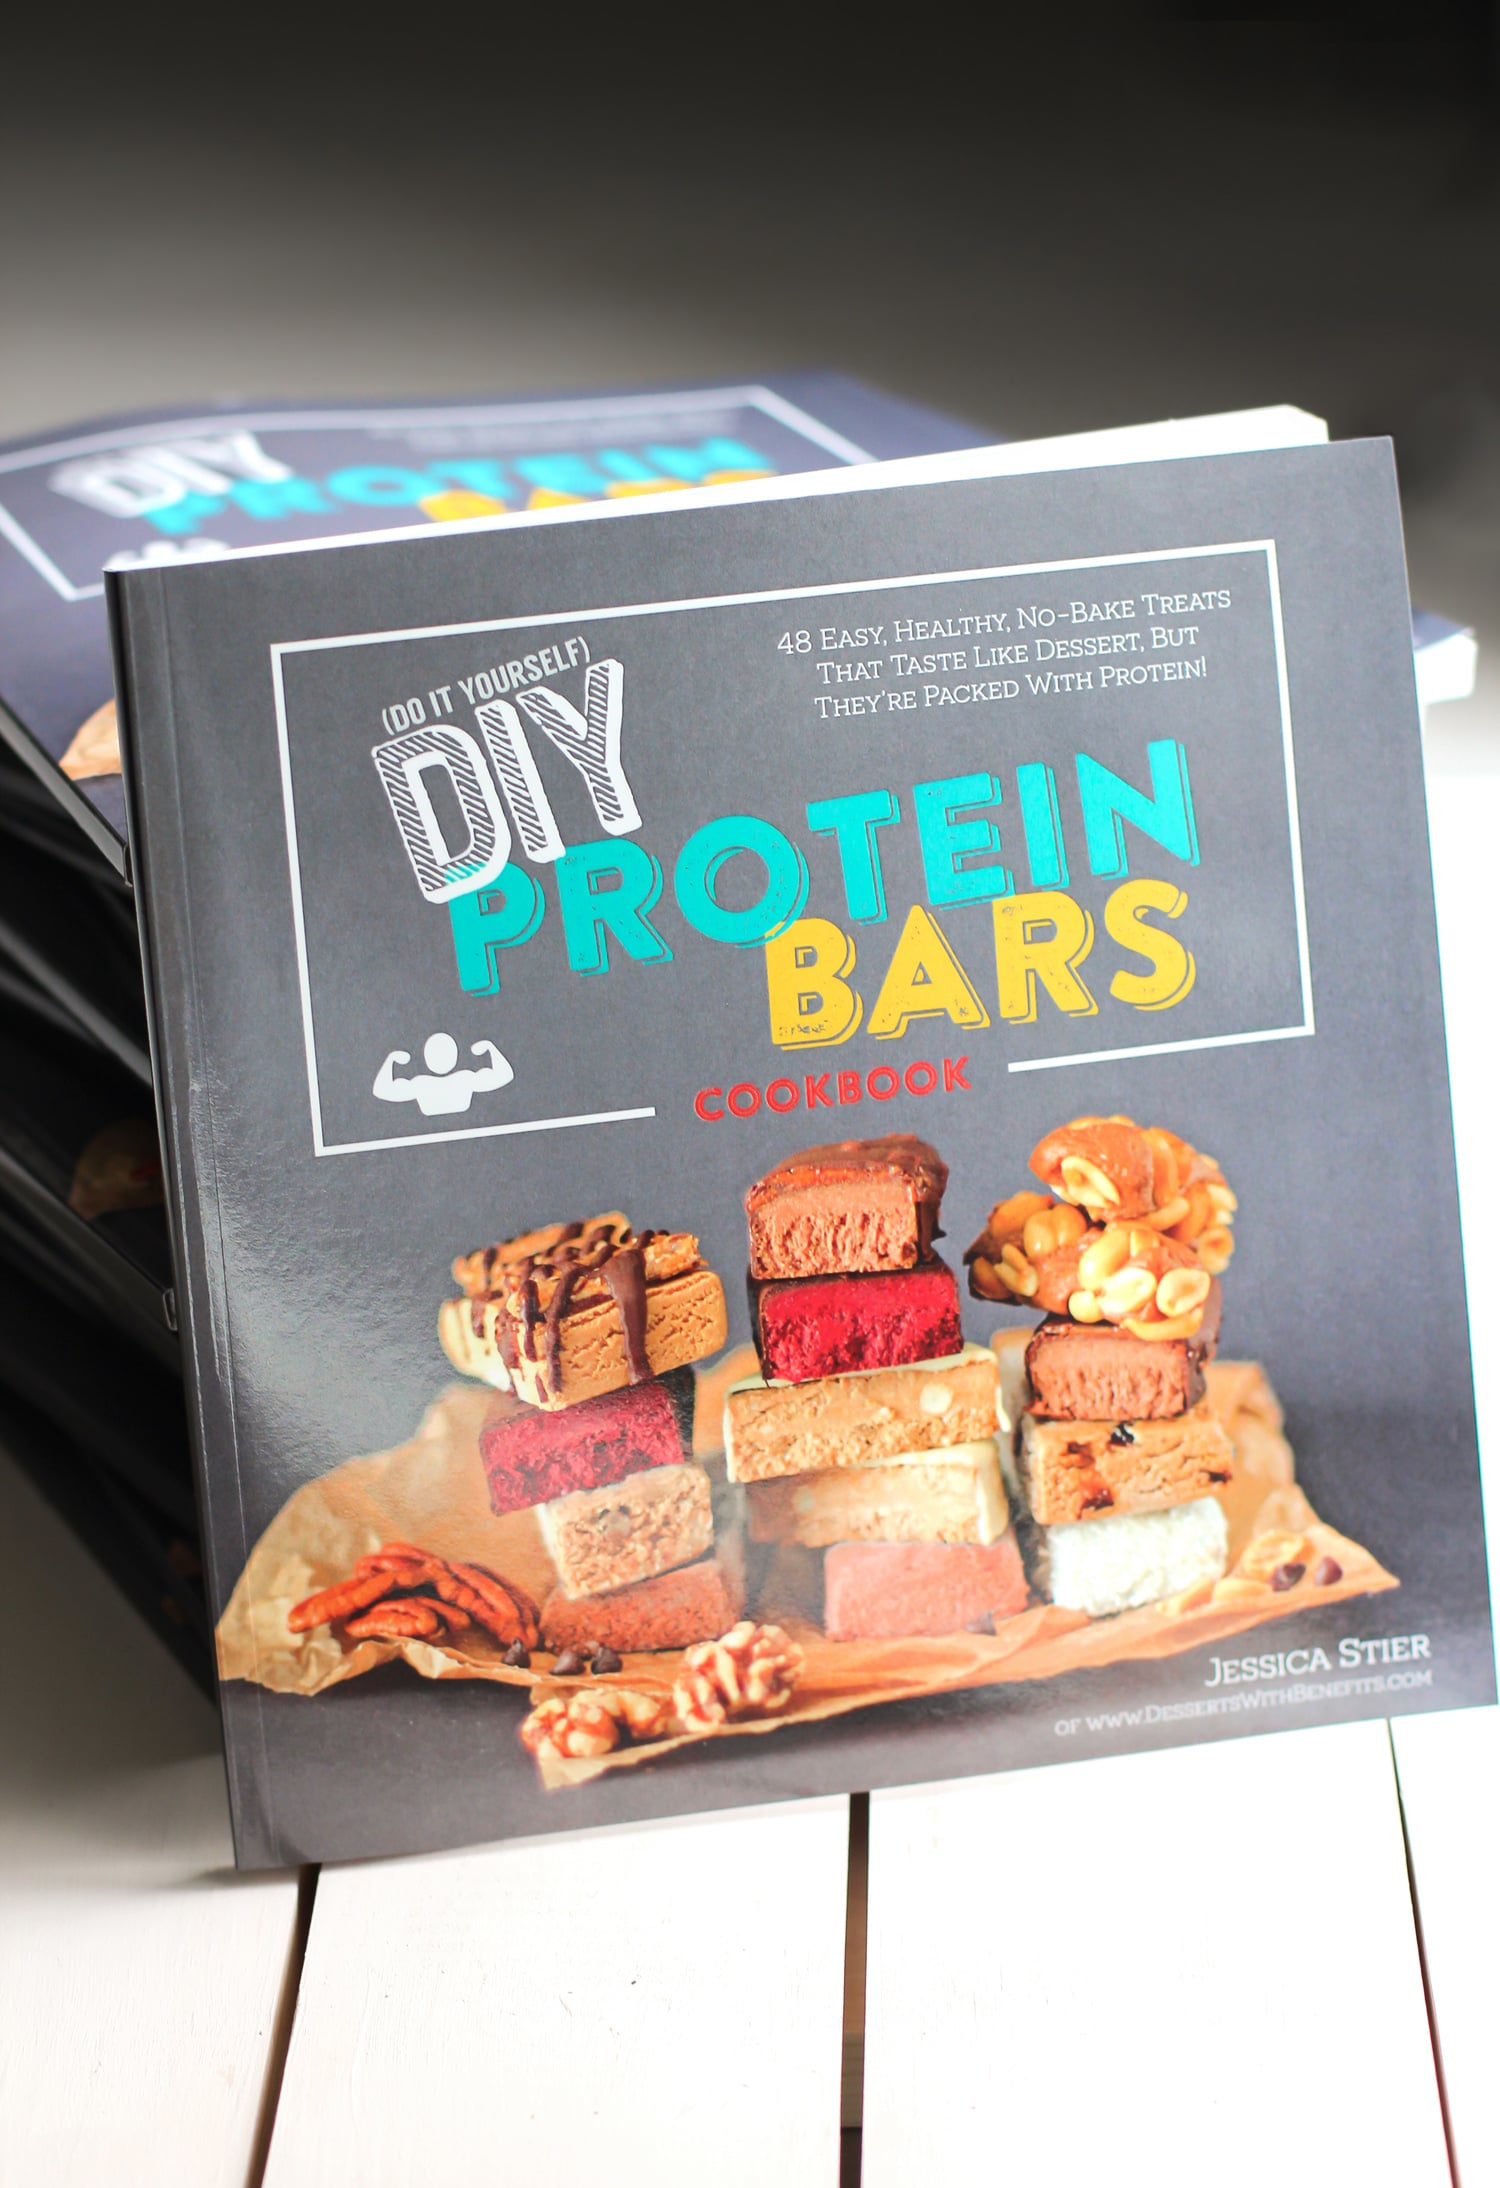 The DIY Protein Bars Cookbook